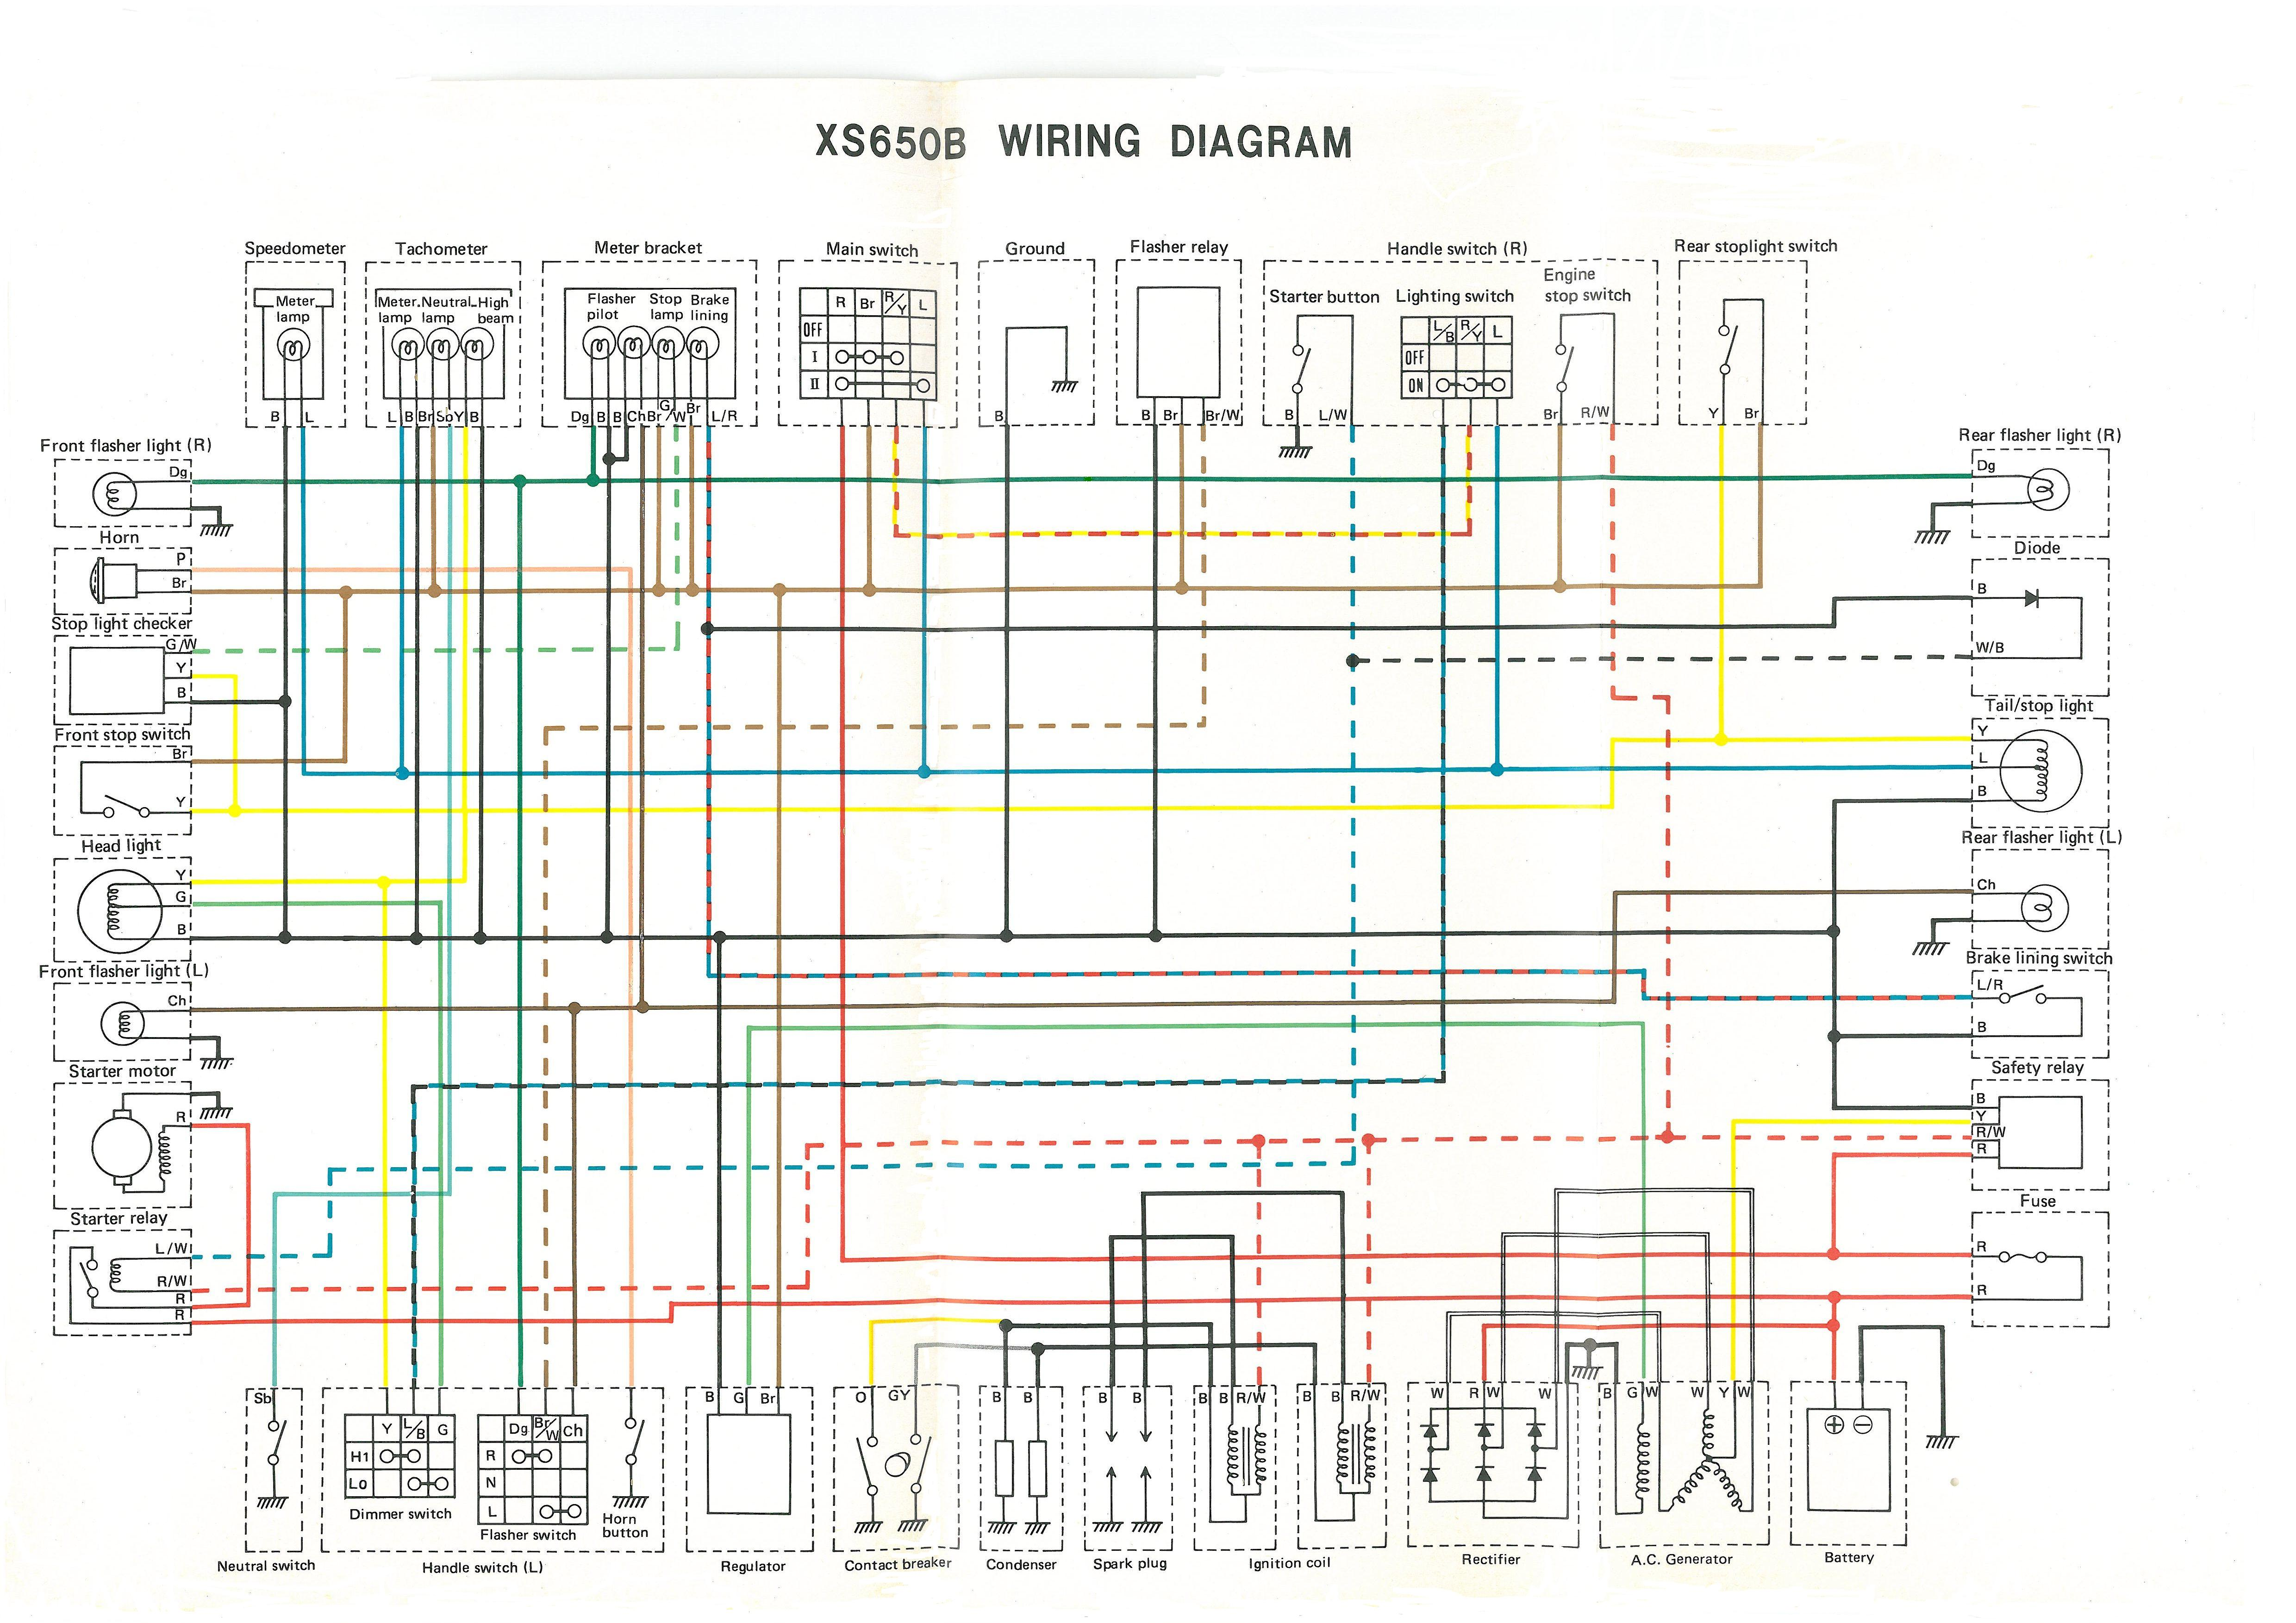 75 xs650b wiring circuit diagram 2 72 xs2 wiring diagram diagram wiring diagrams for diy car repairs XS2 Bow String at gsmportal.co